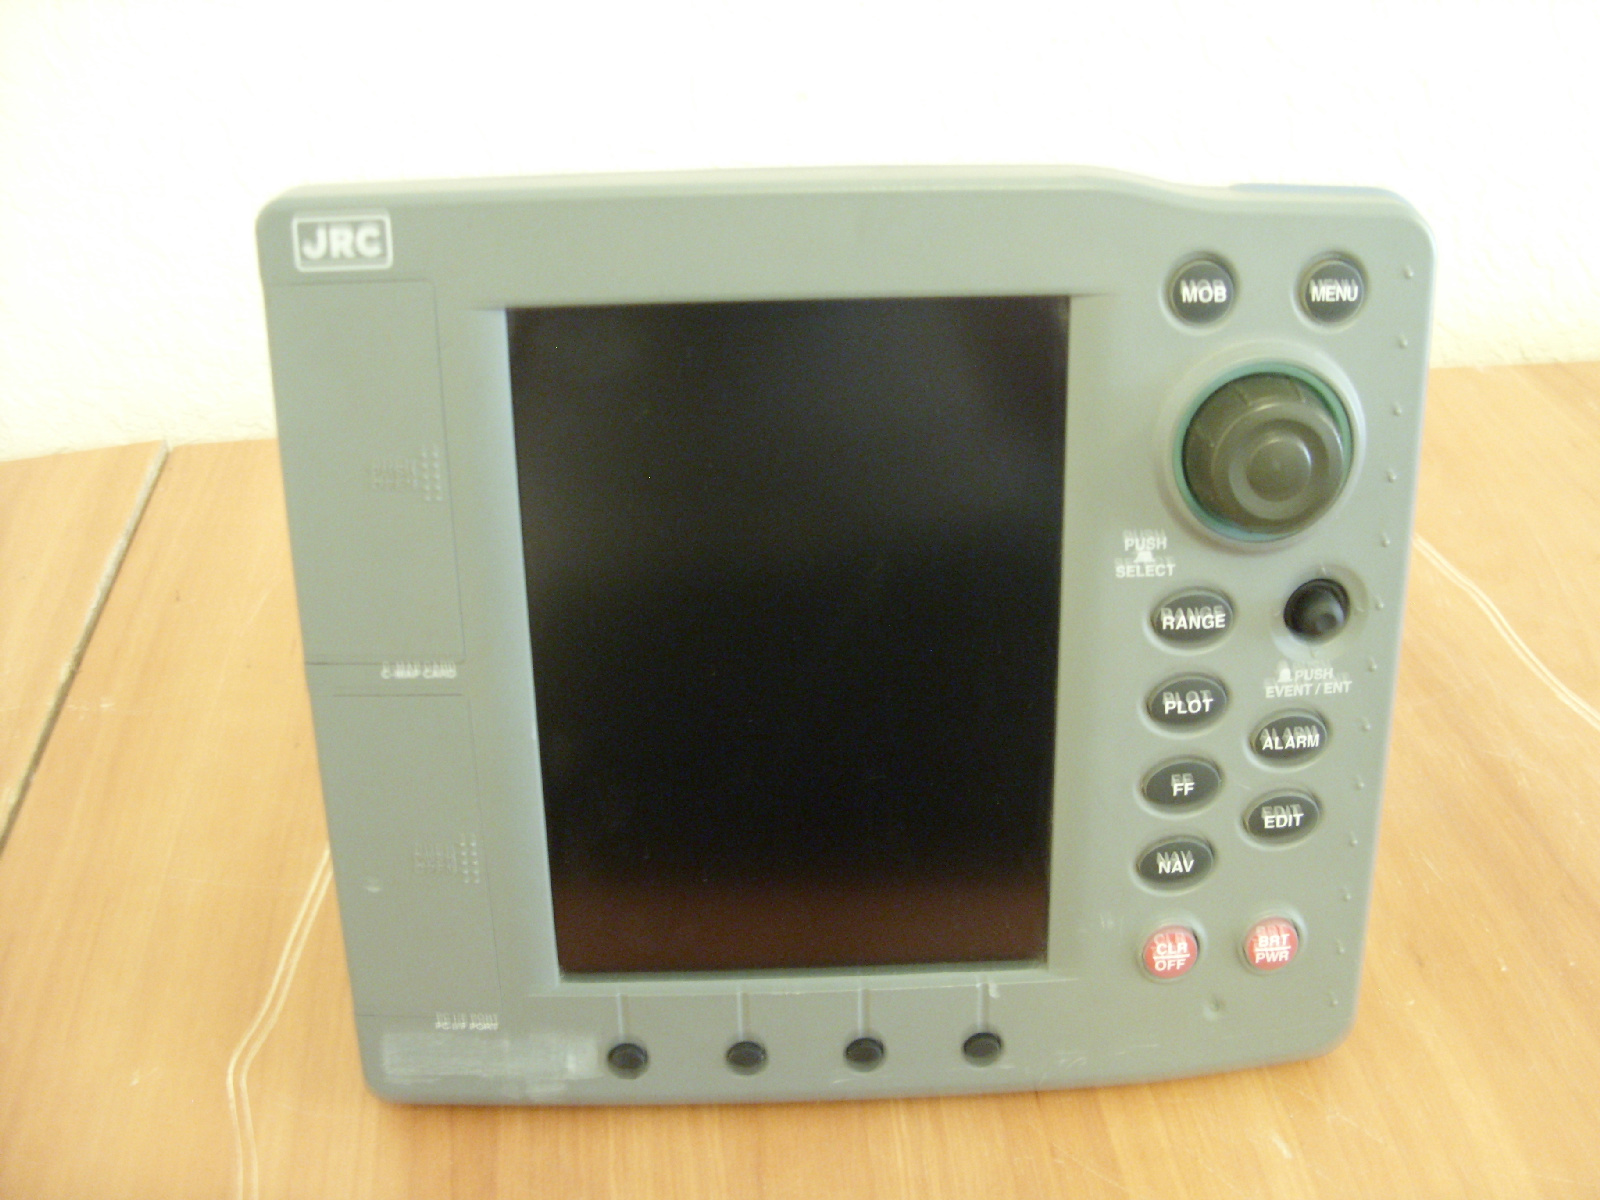 jrc plot 500f color fishfinder sounder chartplotter